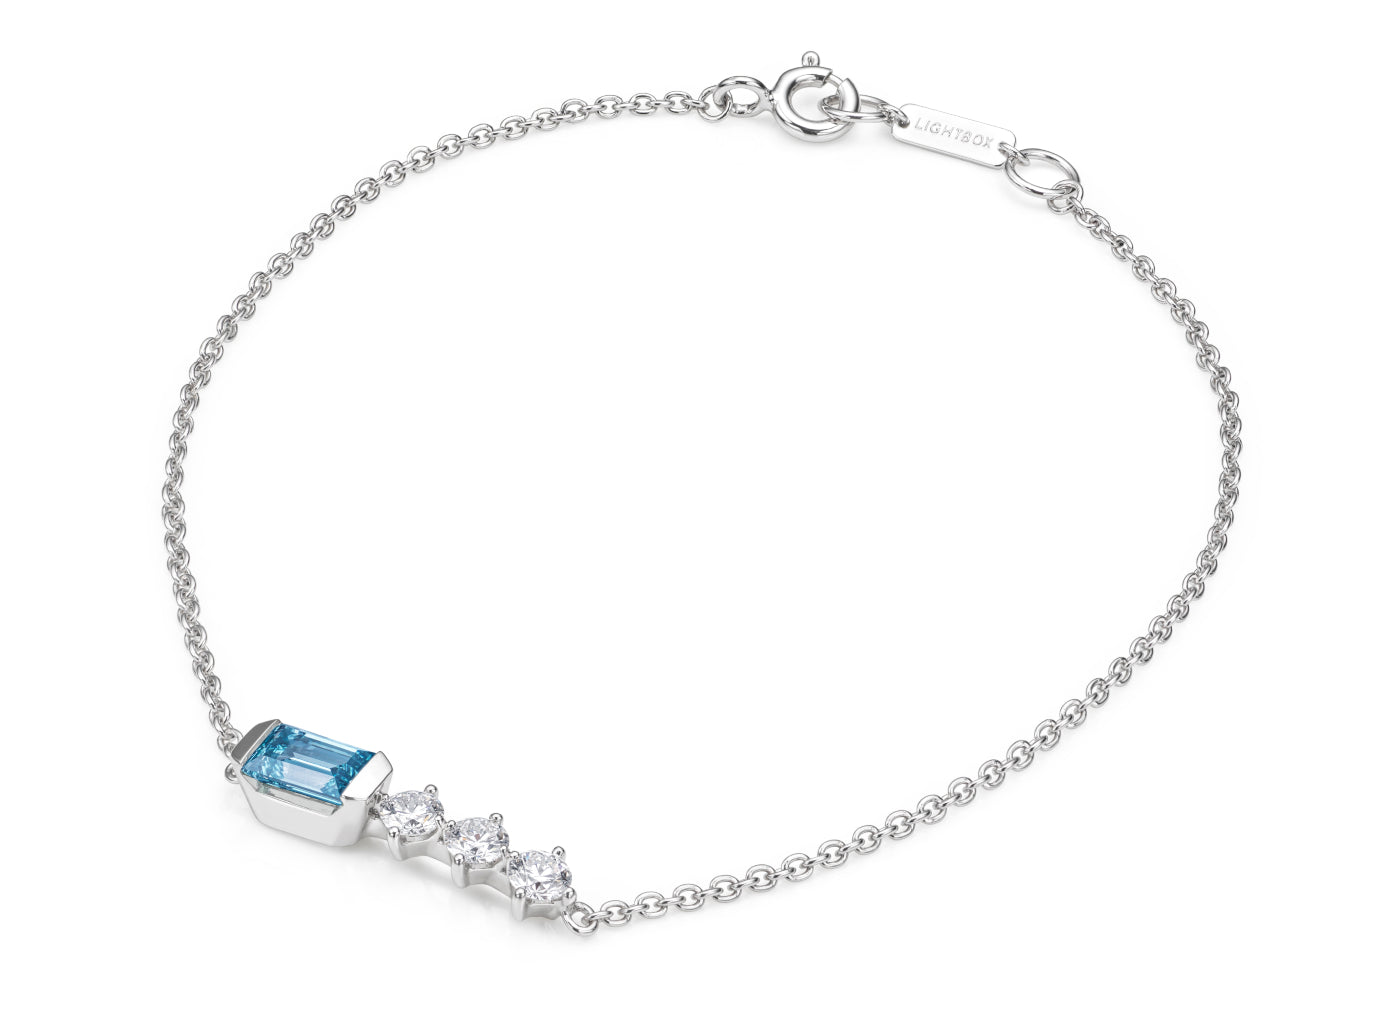 Bar Bracelet in Blue